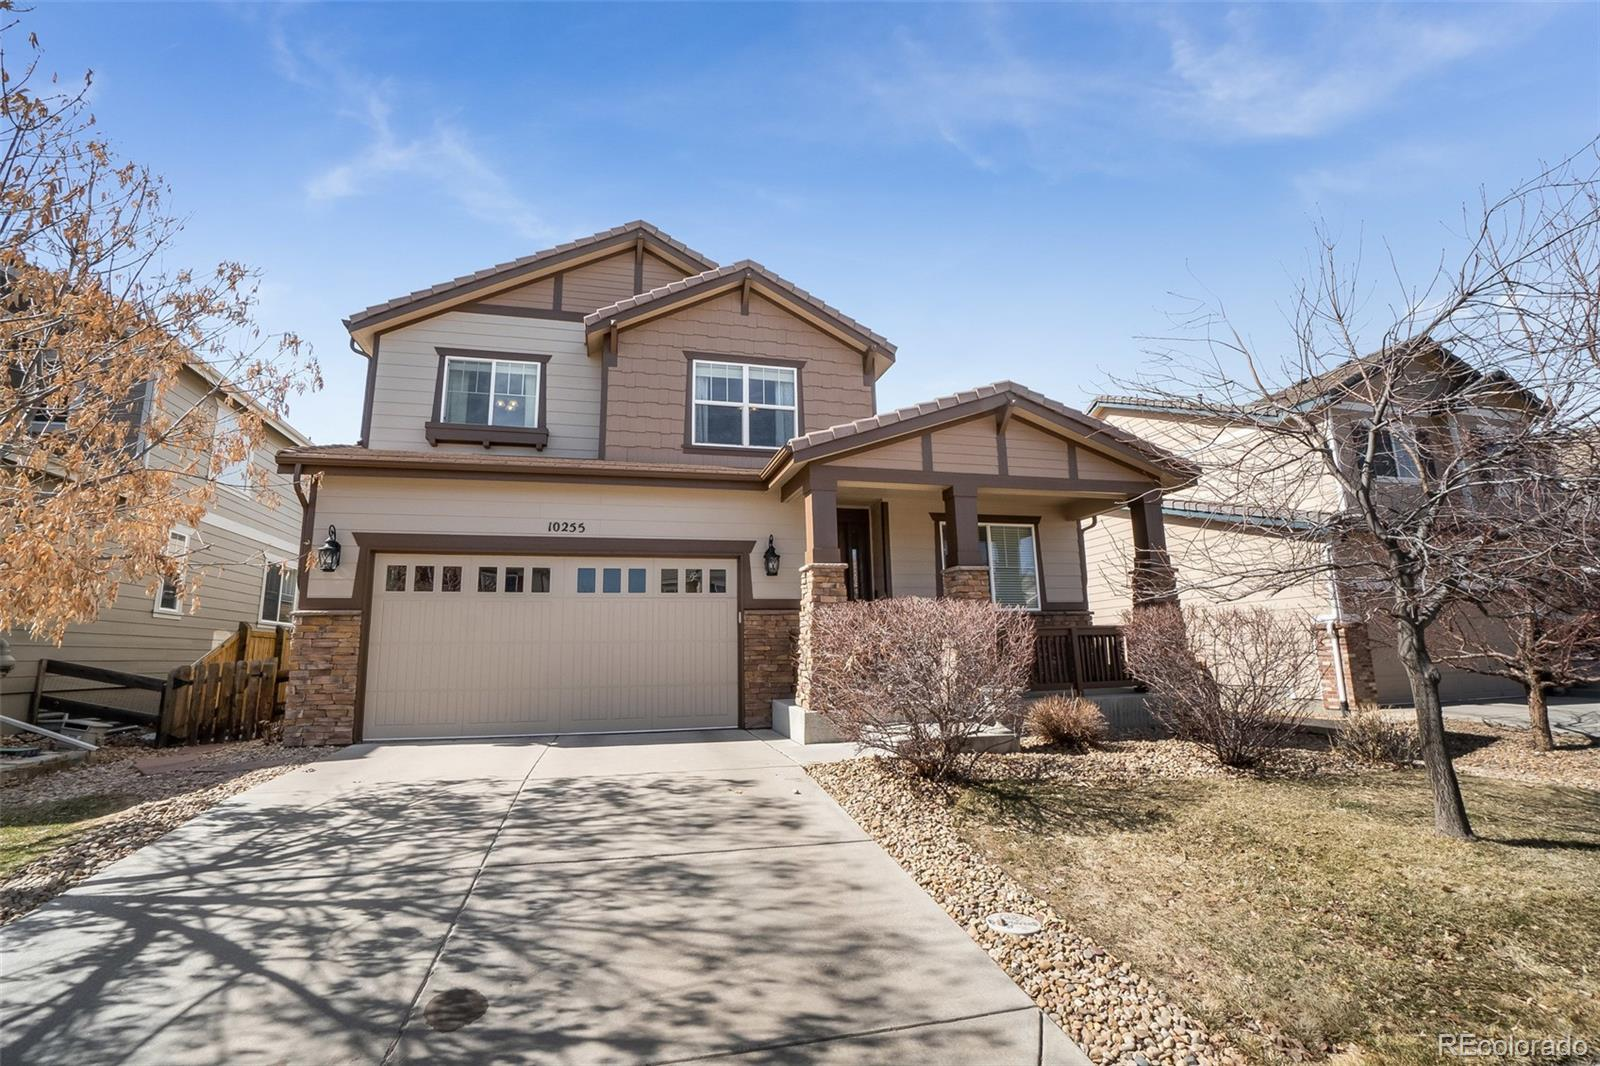 MLS# 6595199 - 2 - 10255 Greenfield Circle, Parker, CO 80134